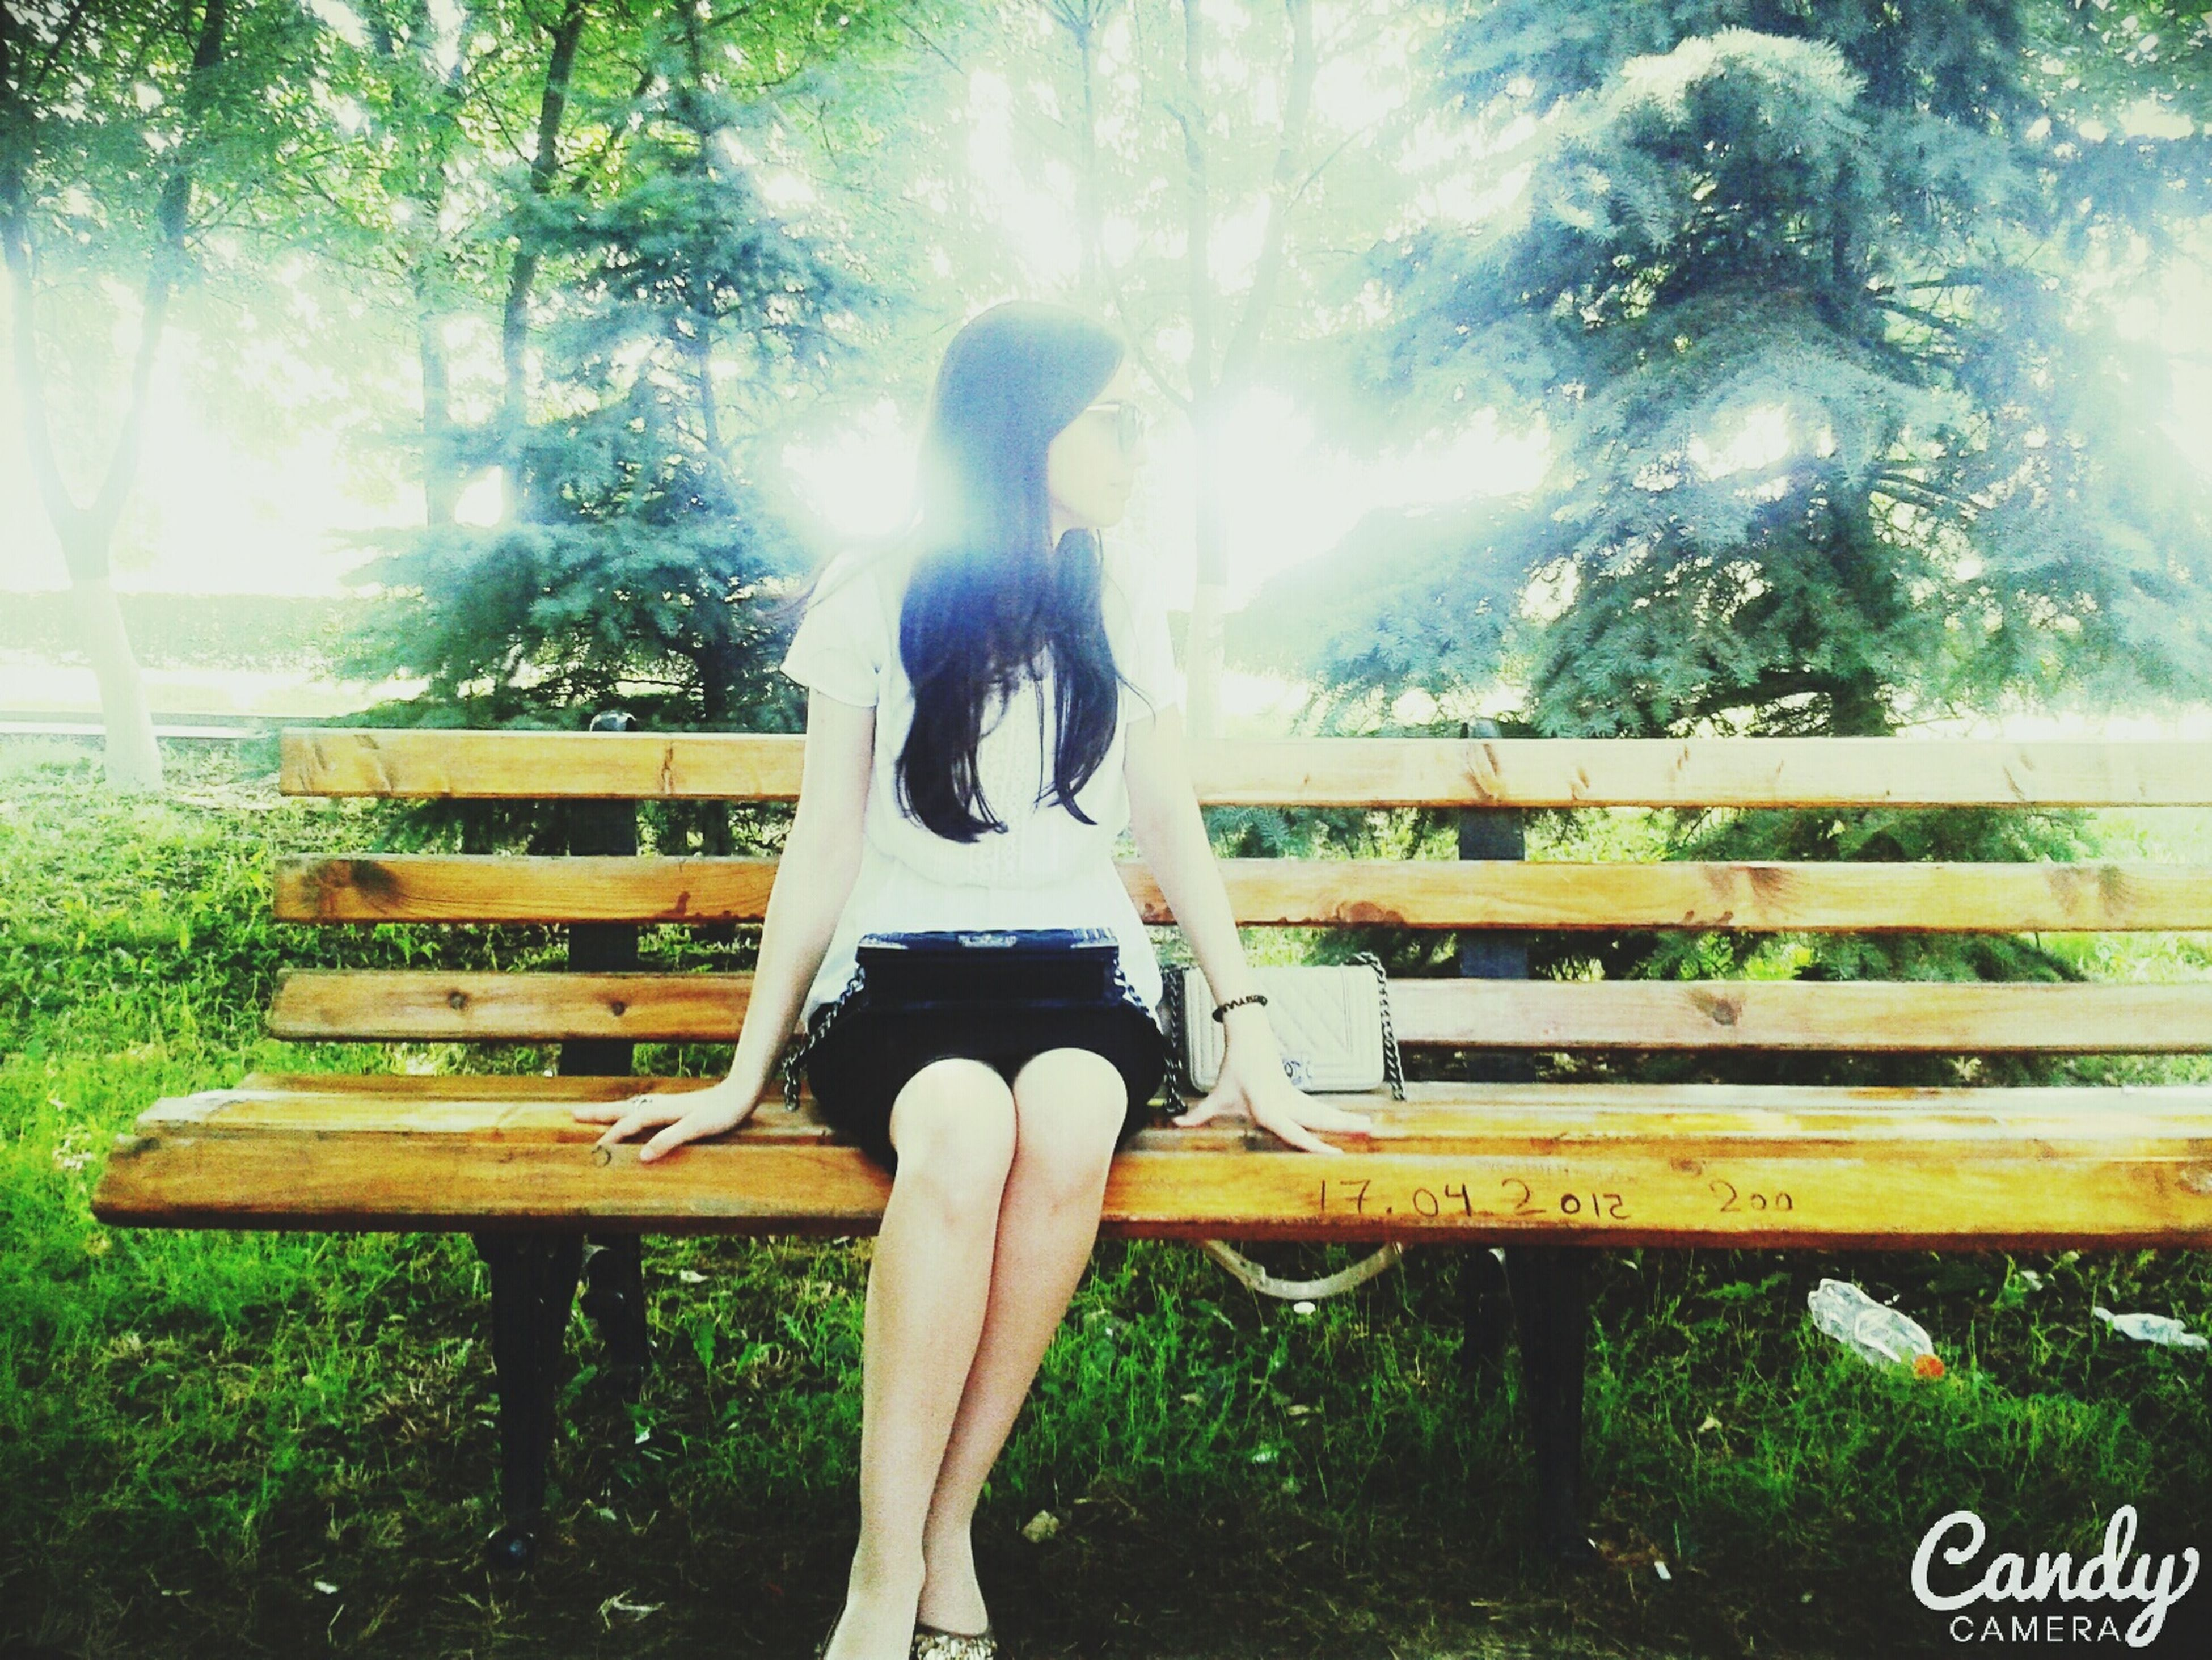 tree, lifestyles, leisure activity, standing, sunlight, three quarter length, casual clothing, outdoors, full length, day, waist up, wood - material, water, railing, person, sunbeam, lens flare, young adult